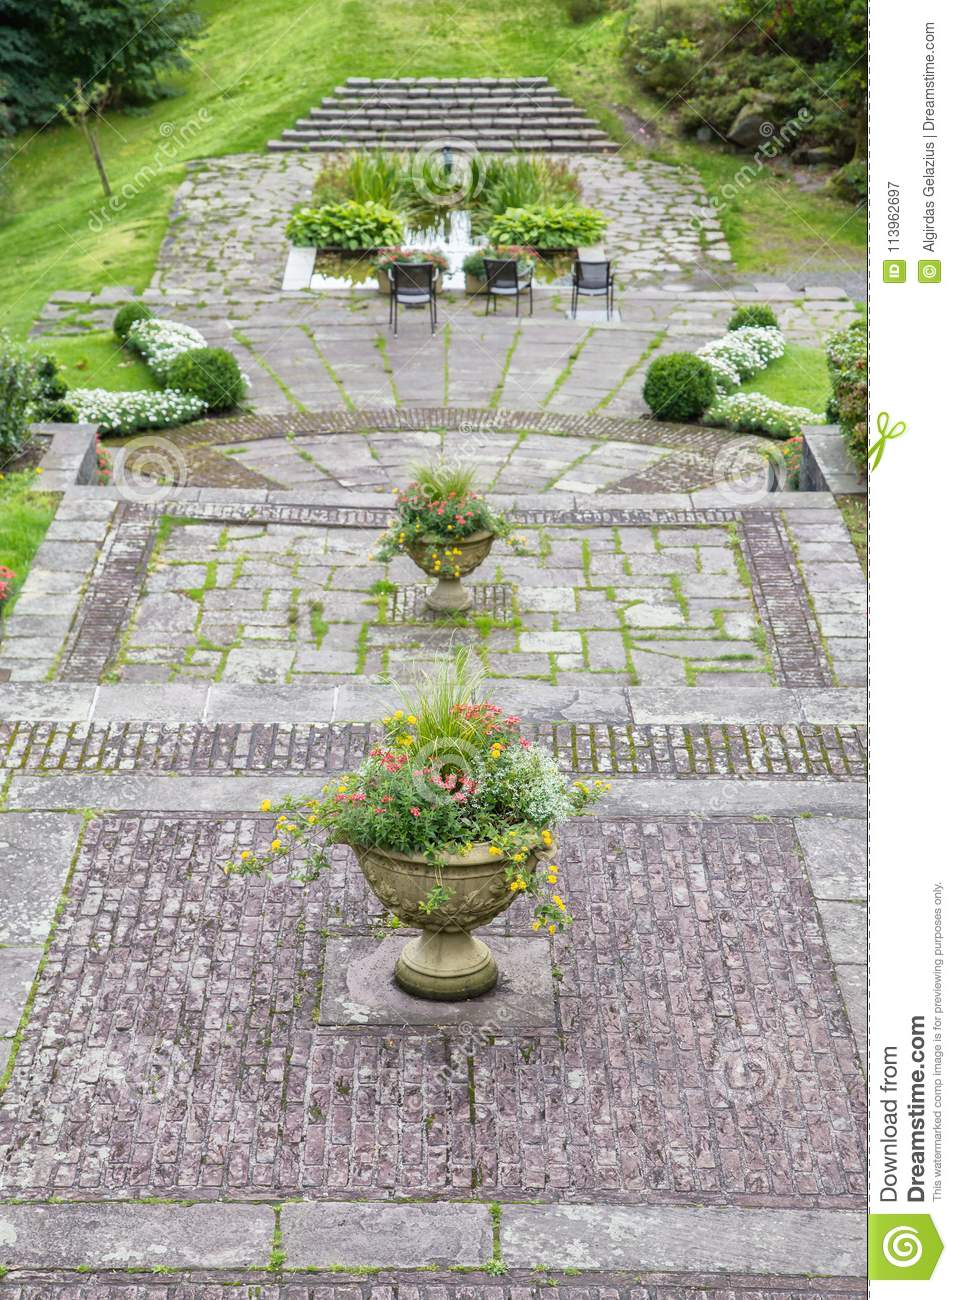 Concrete Garden Pots Vintage large concrete garden pots with flowers and three chairs vintage large concrete garden pots with flowers and three chairs on a concrete pavement in an old park workwithnaturefo